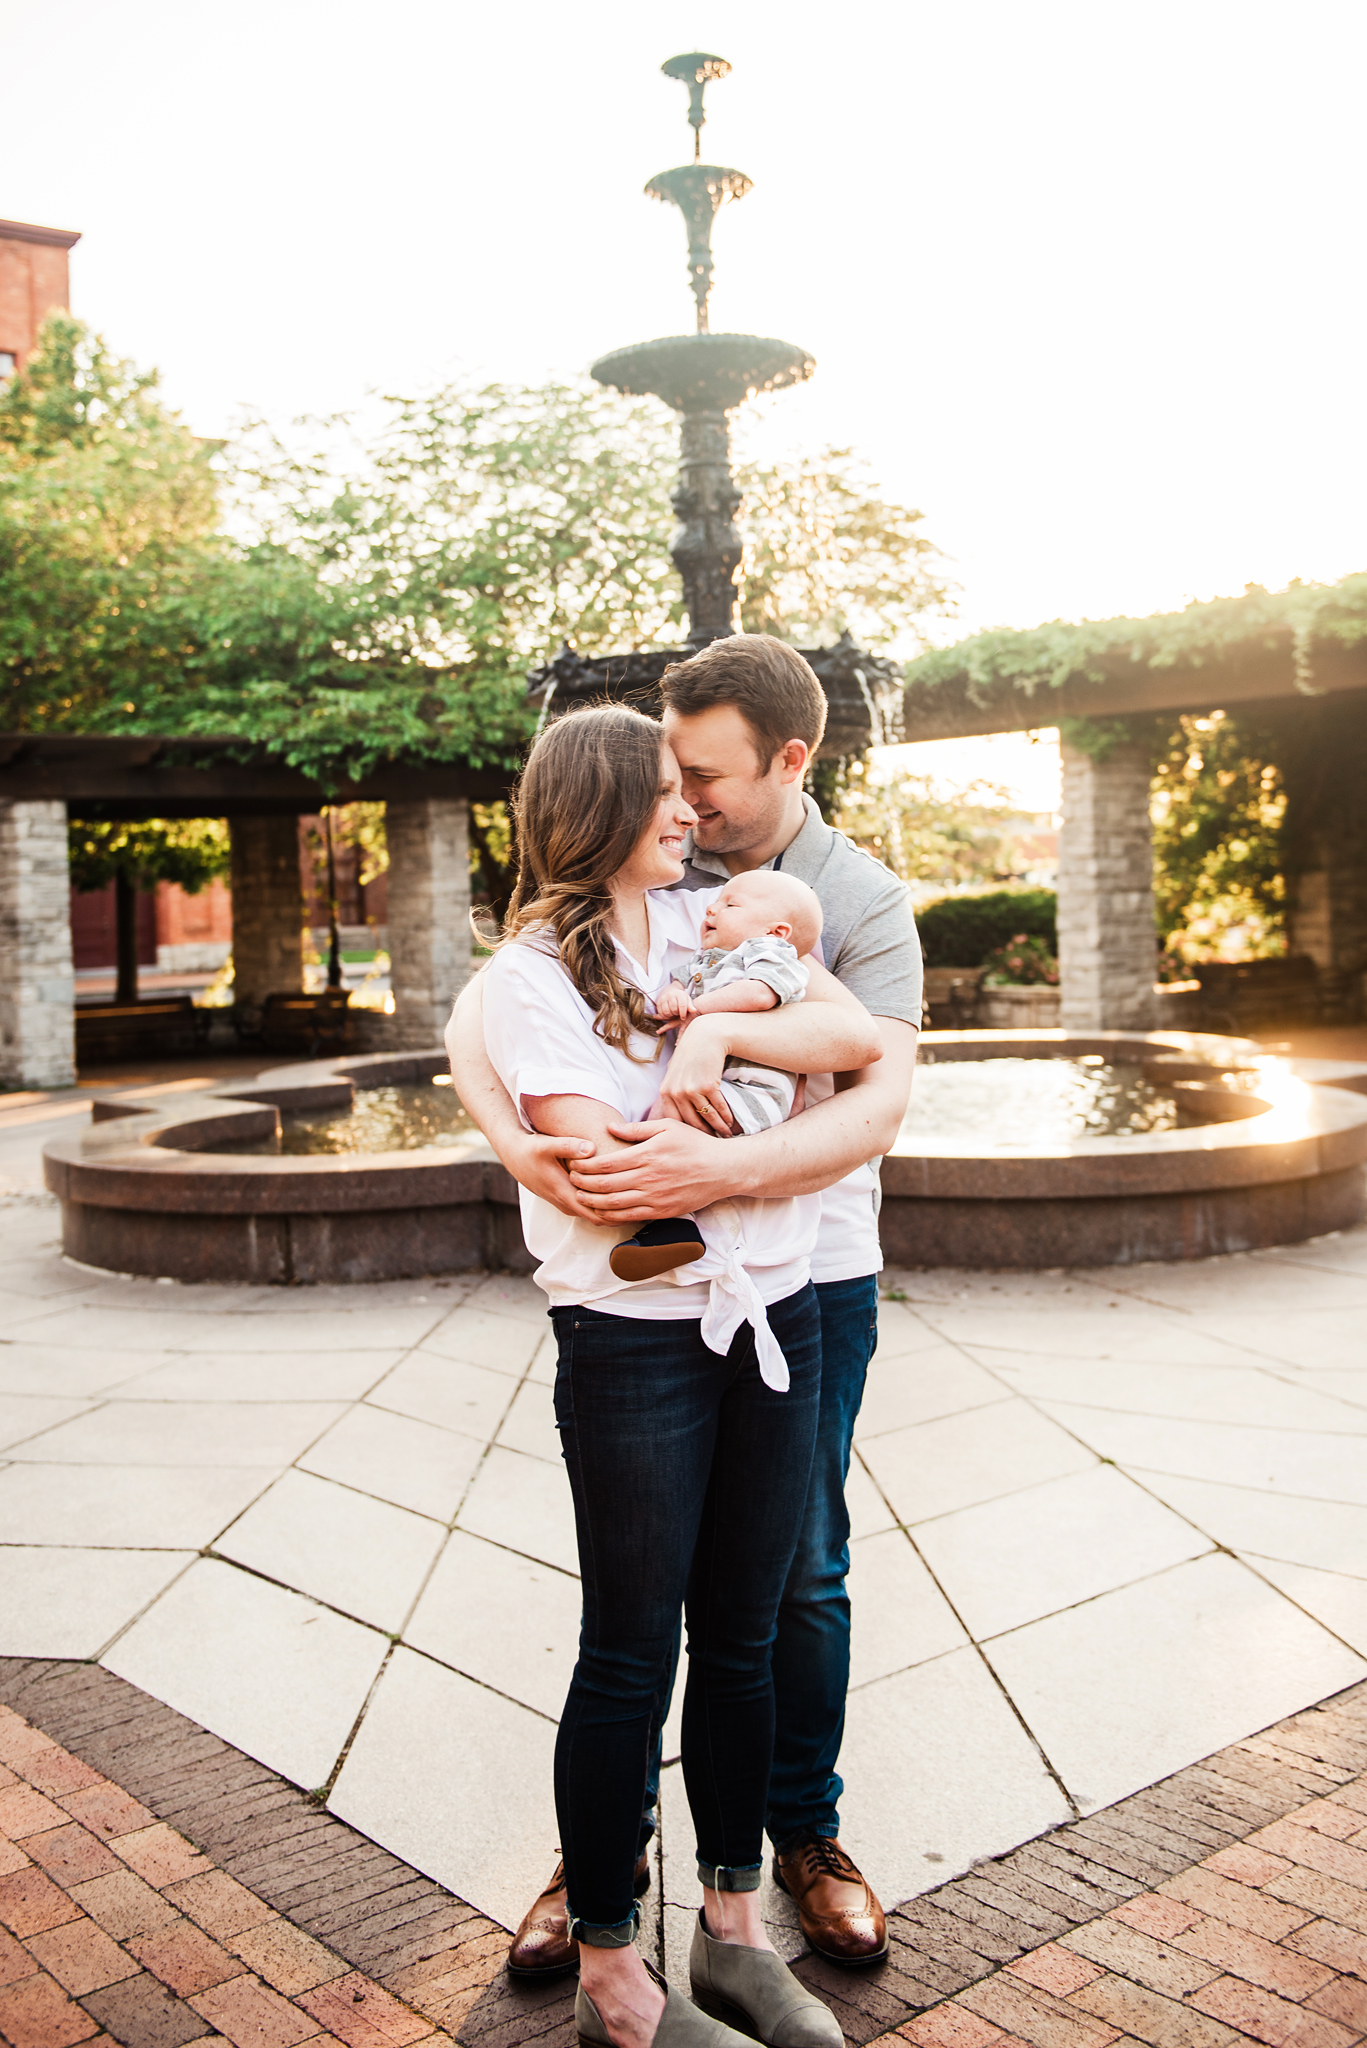 Franklin_Square_Park_Syracuse_Engagement_Session_JILL_STUDIO_Rochester_NY_Photographer_DSC_4111.jpg